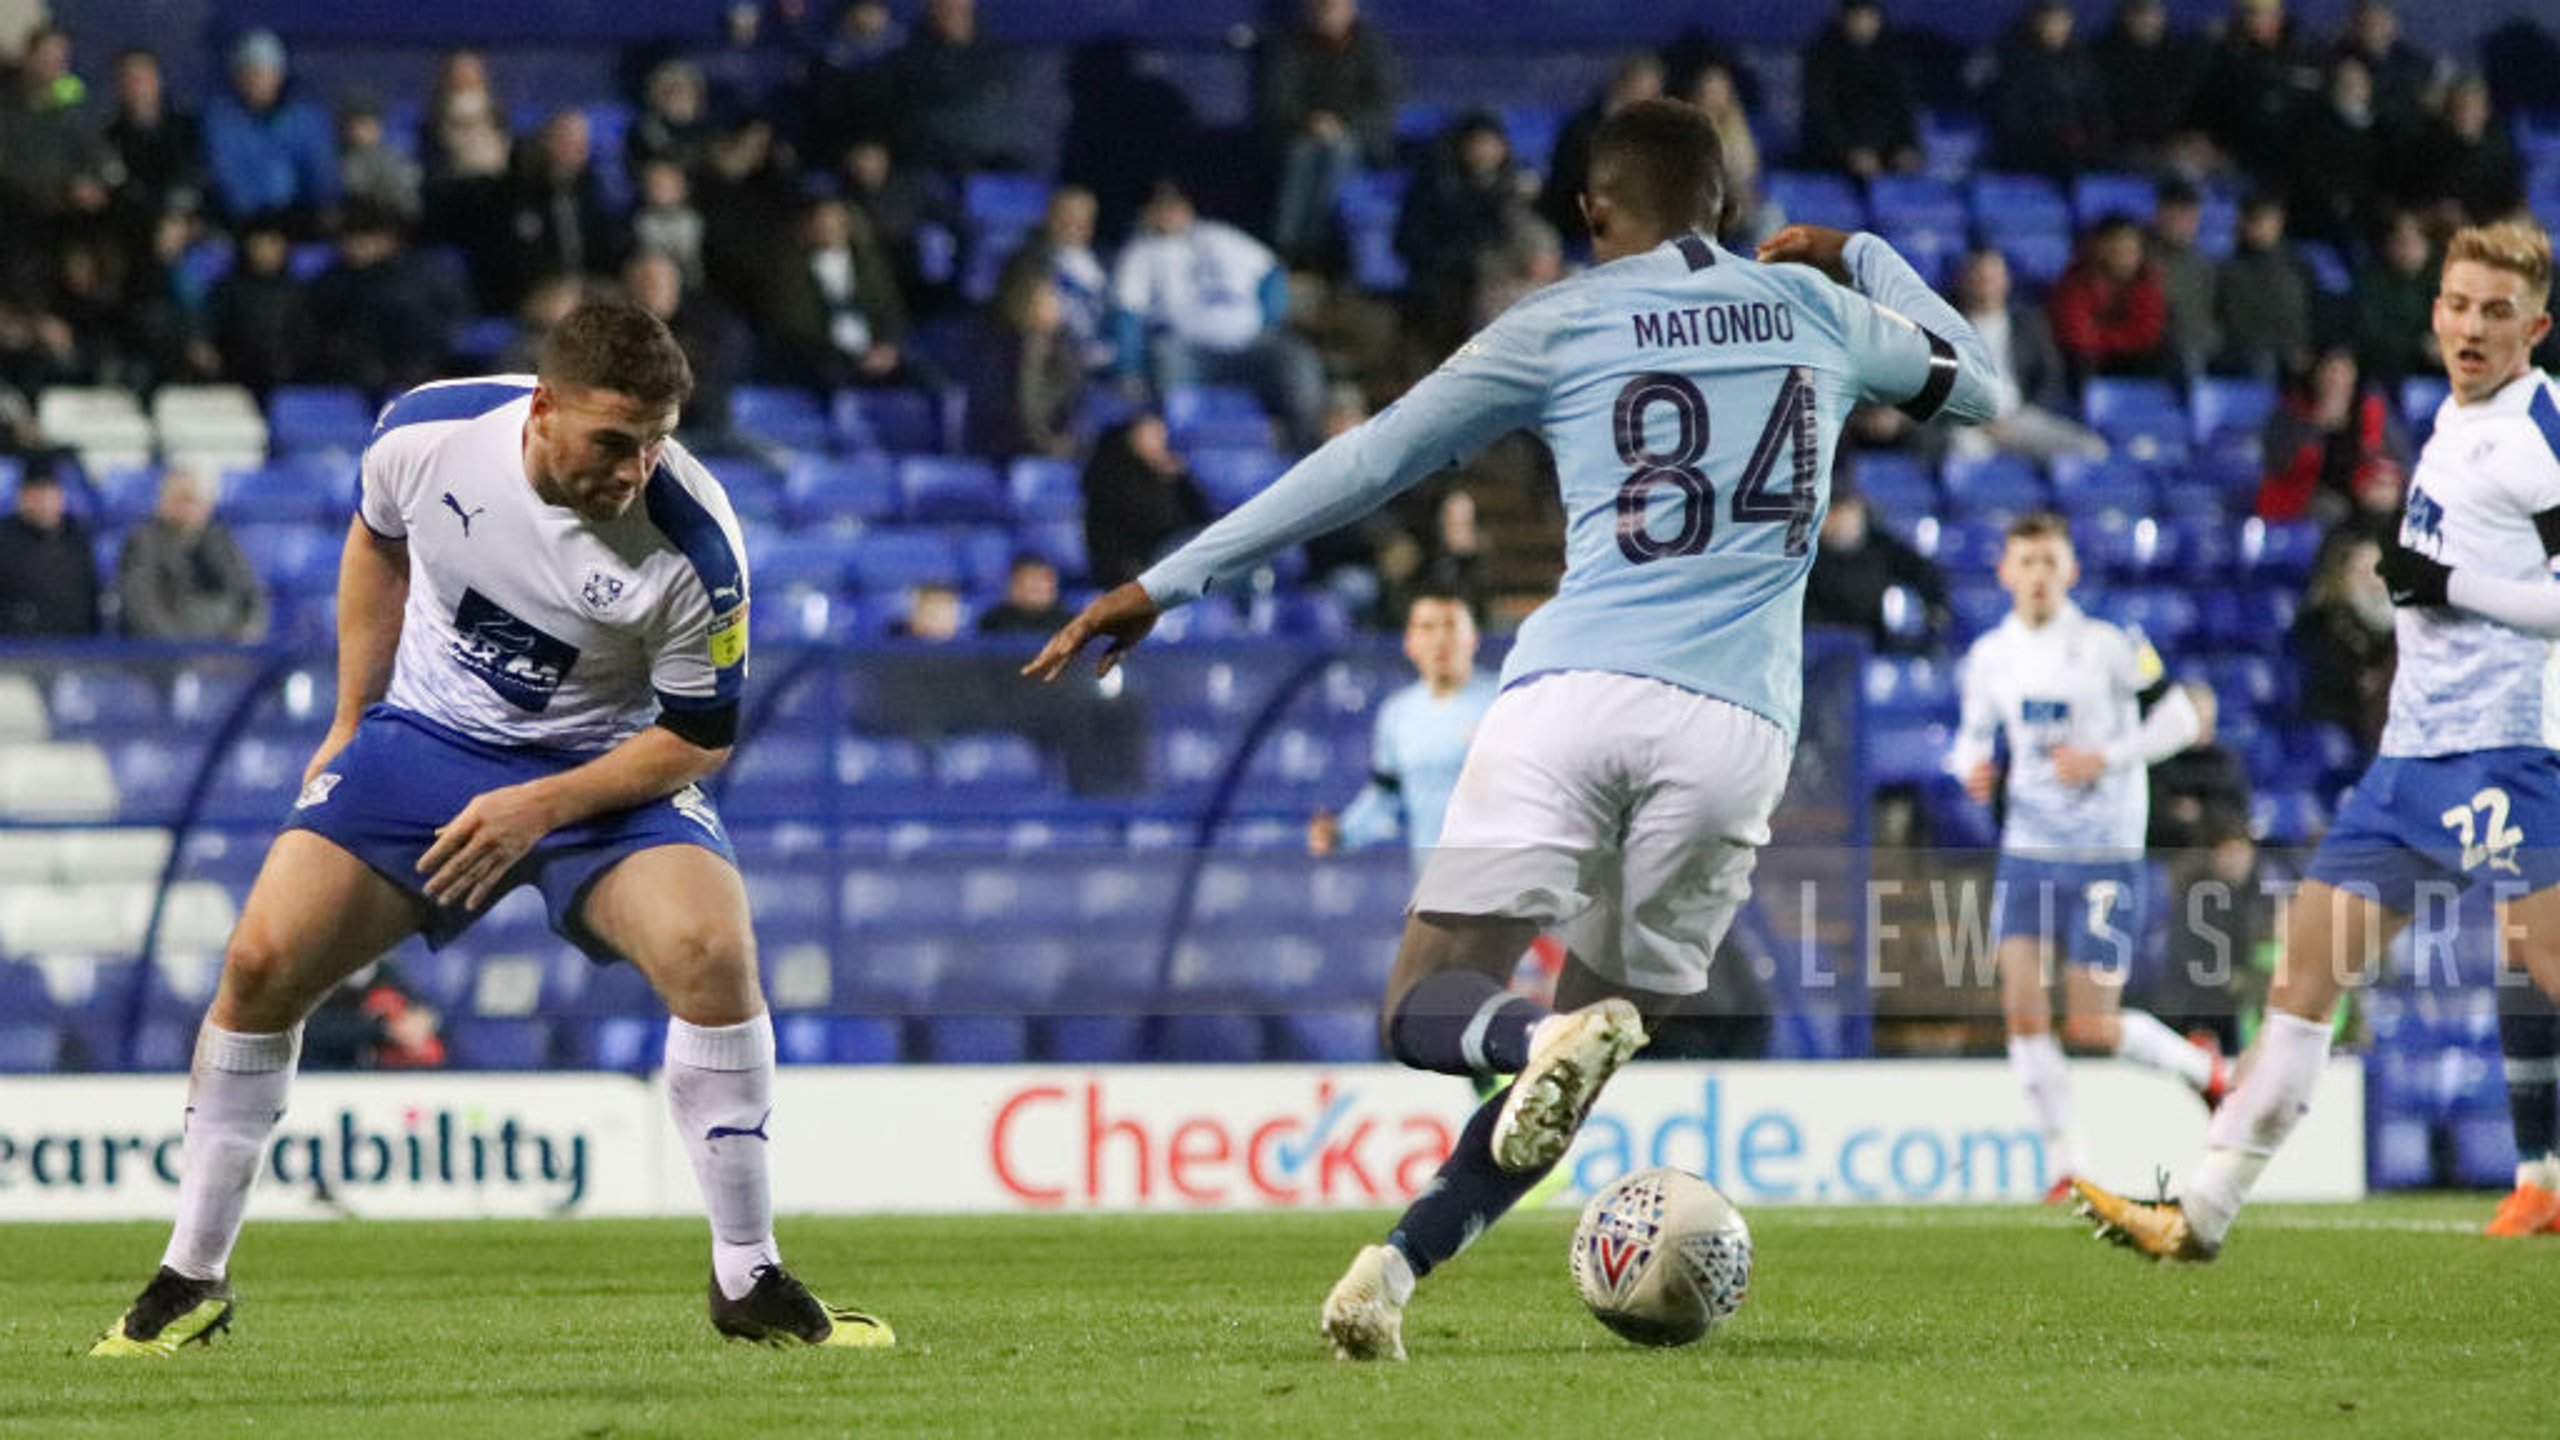 City march on in Checkatrade Trophy